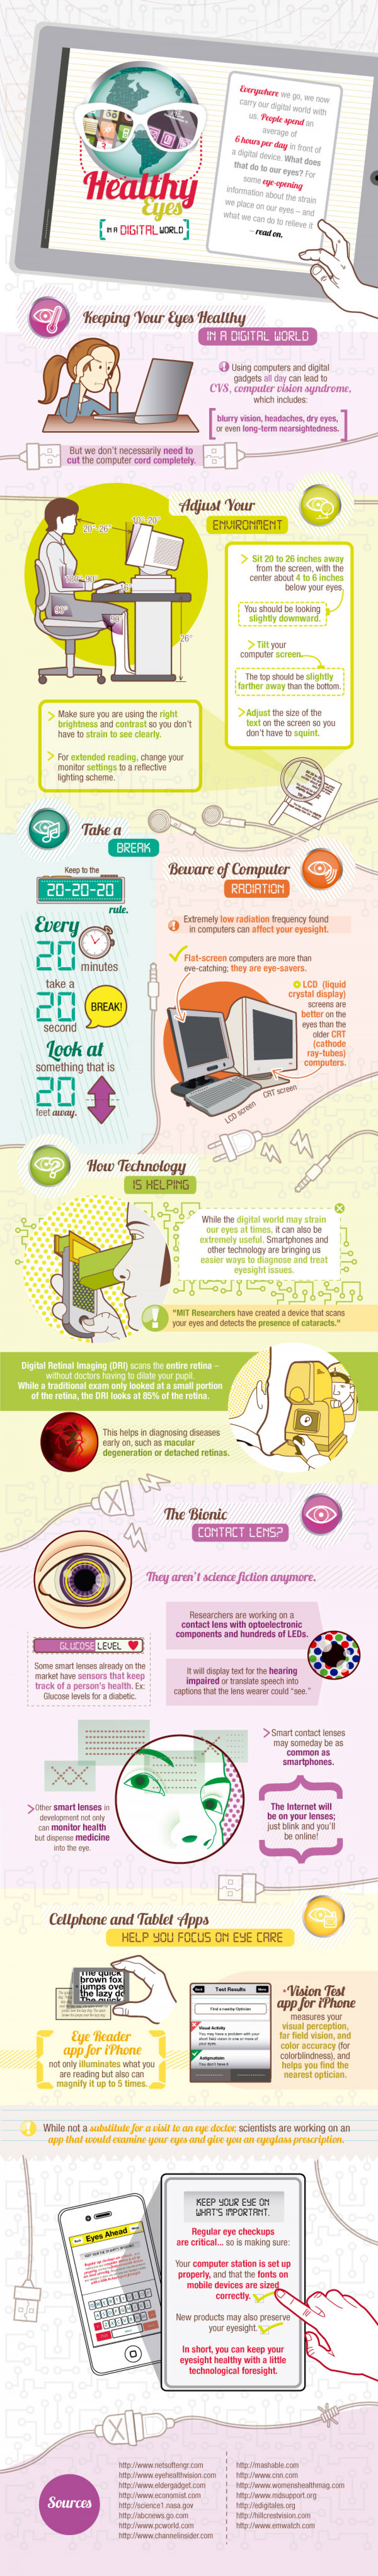 Healthy Eyes in a Digital World Infographic